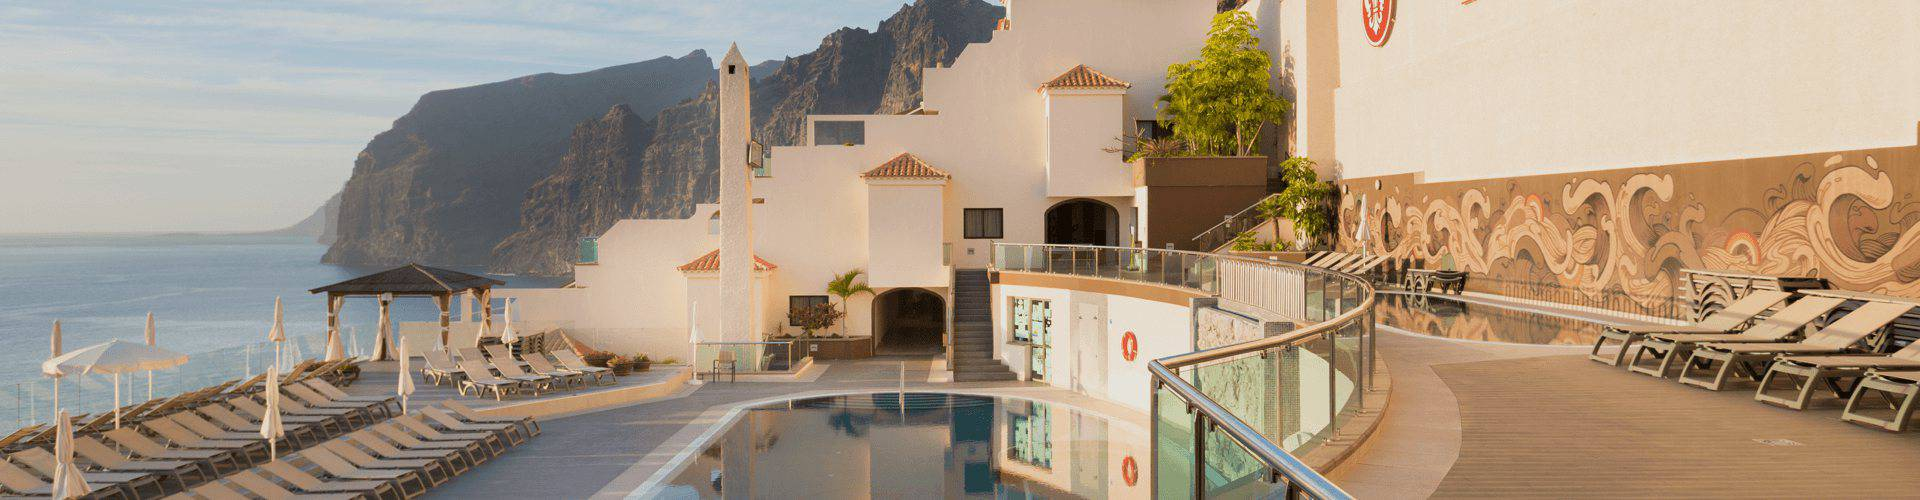 Royal Sun Resort - Acantilado de los Gigantes -